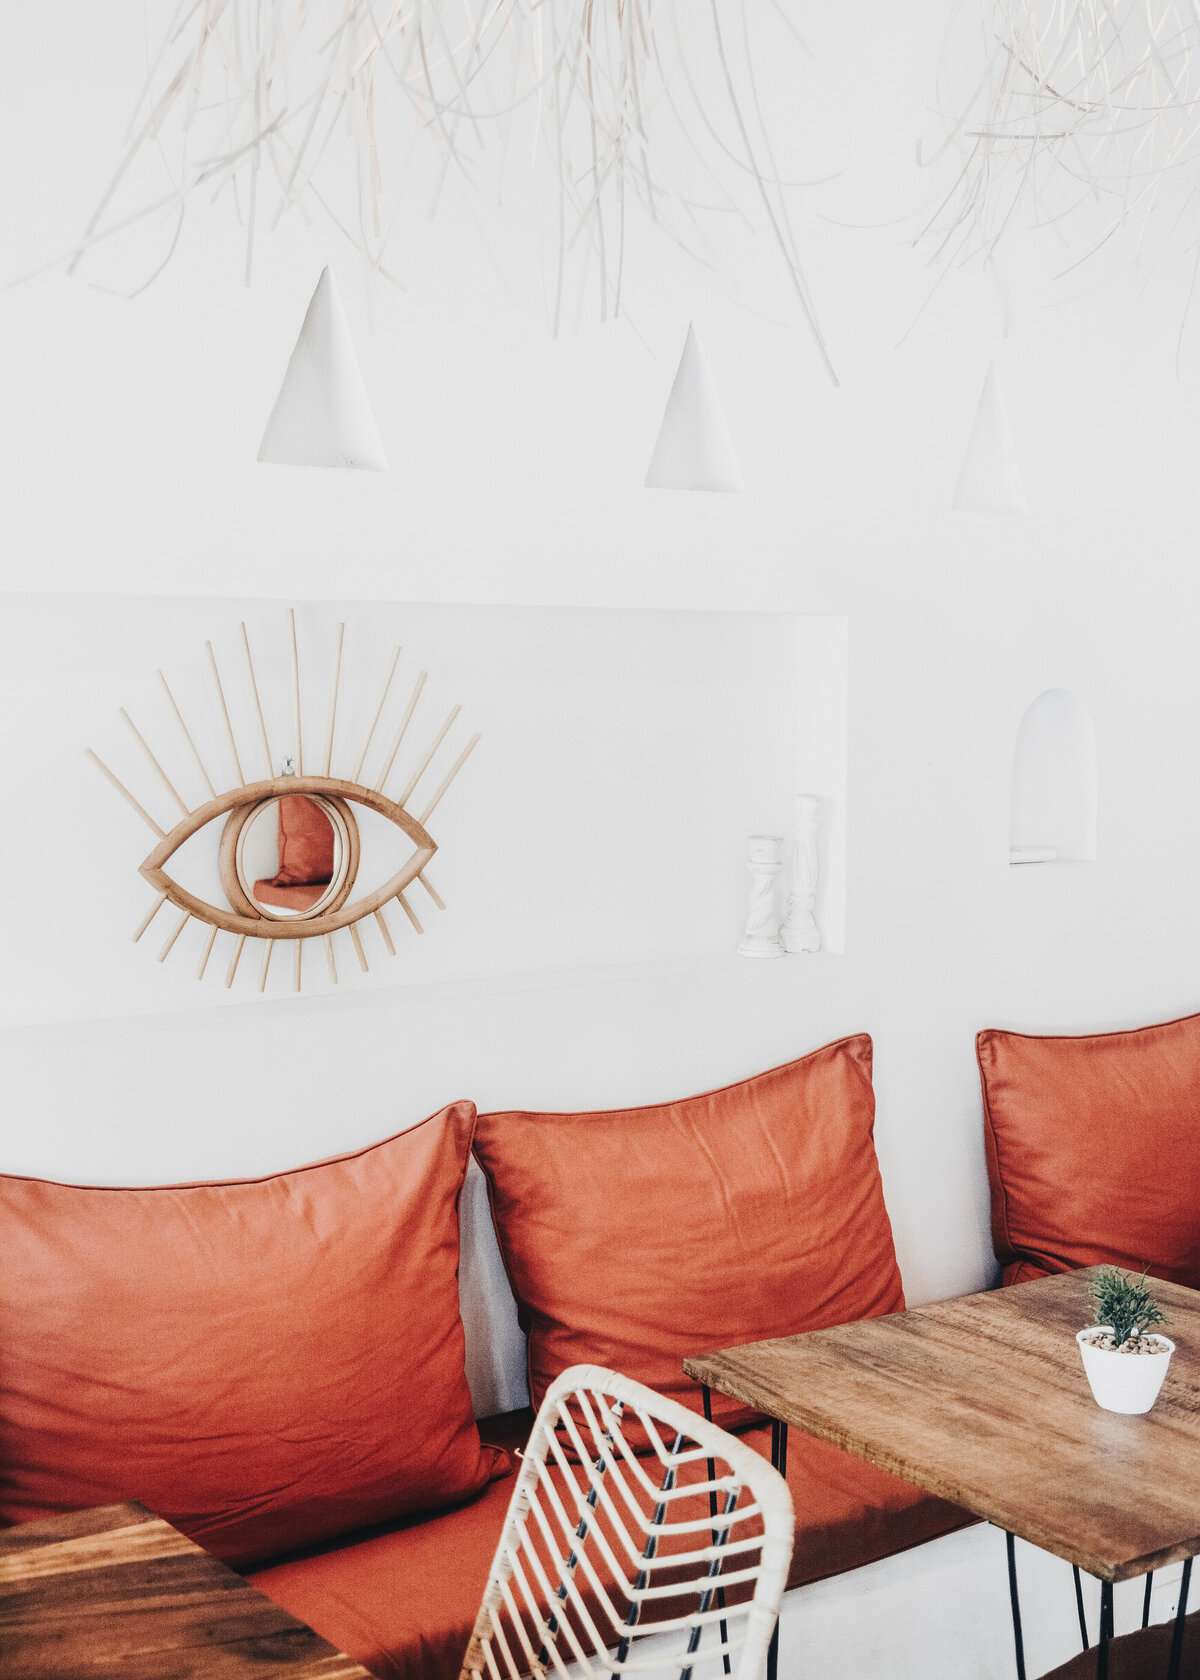 A restaurant has been designed with a boho style with terracotta cushions and an eye shaped mirror.